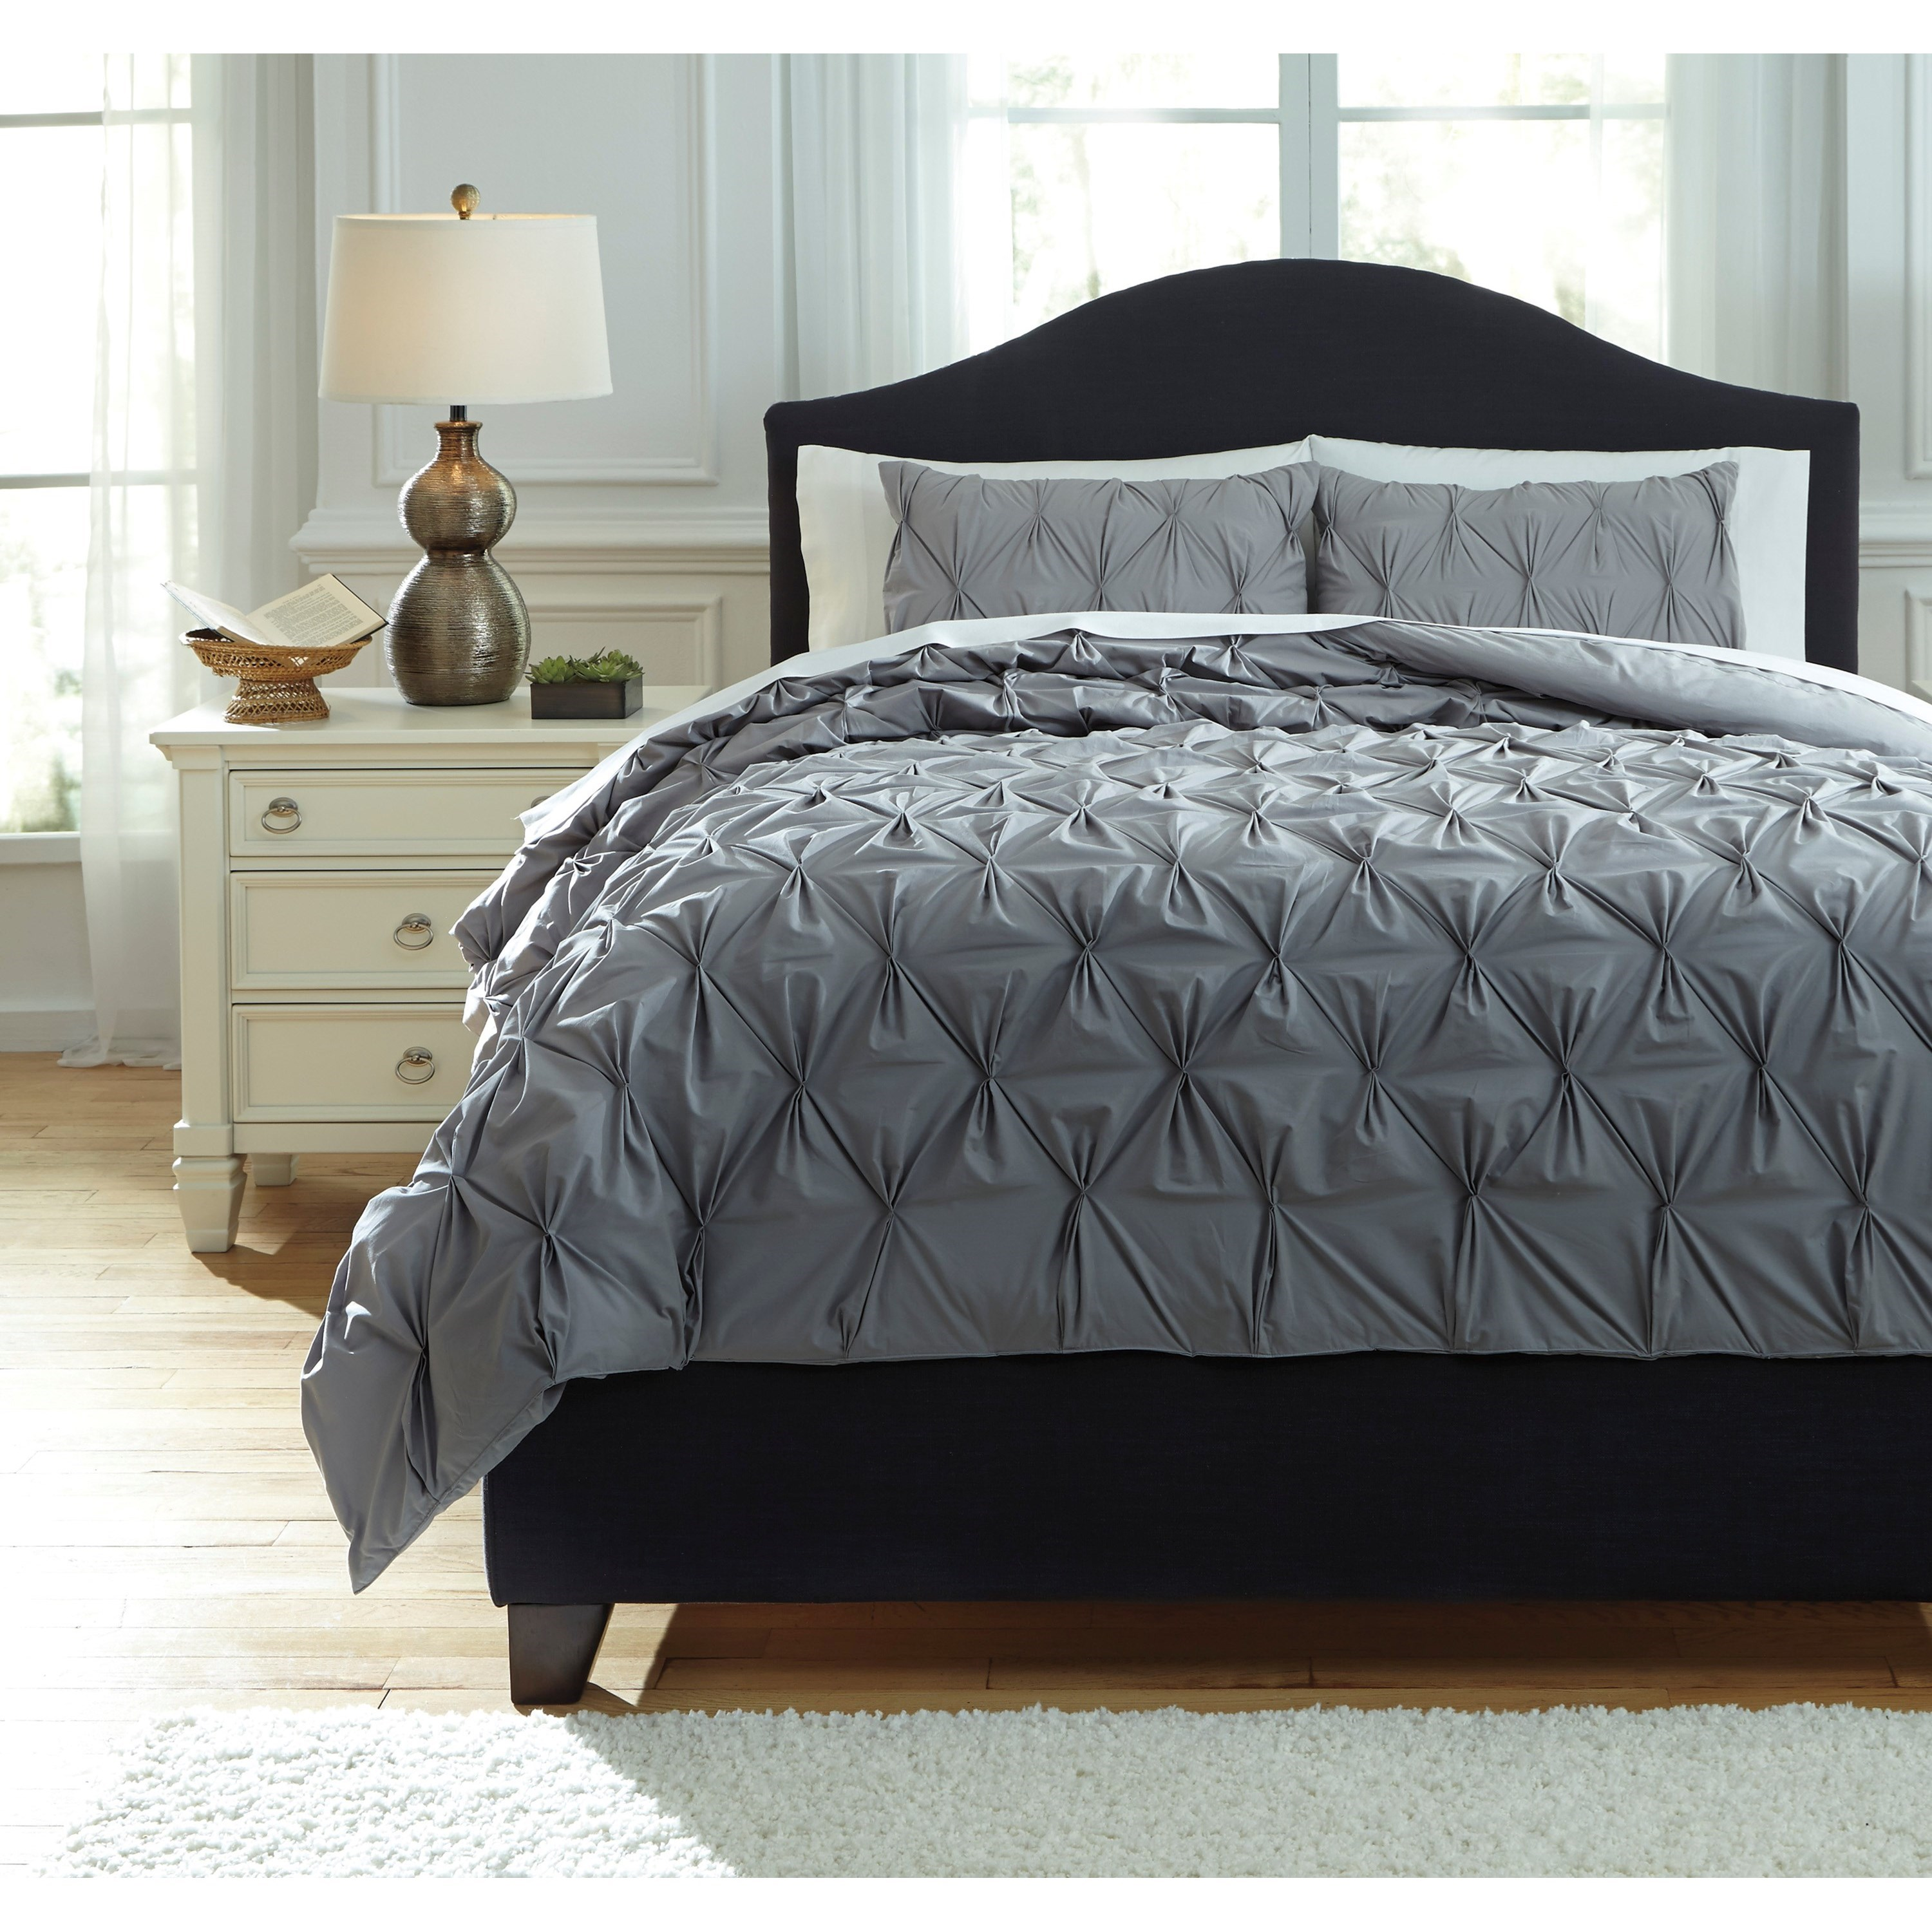 Ashley signature design bedding sets queen rimy gray for Bedding sets queen